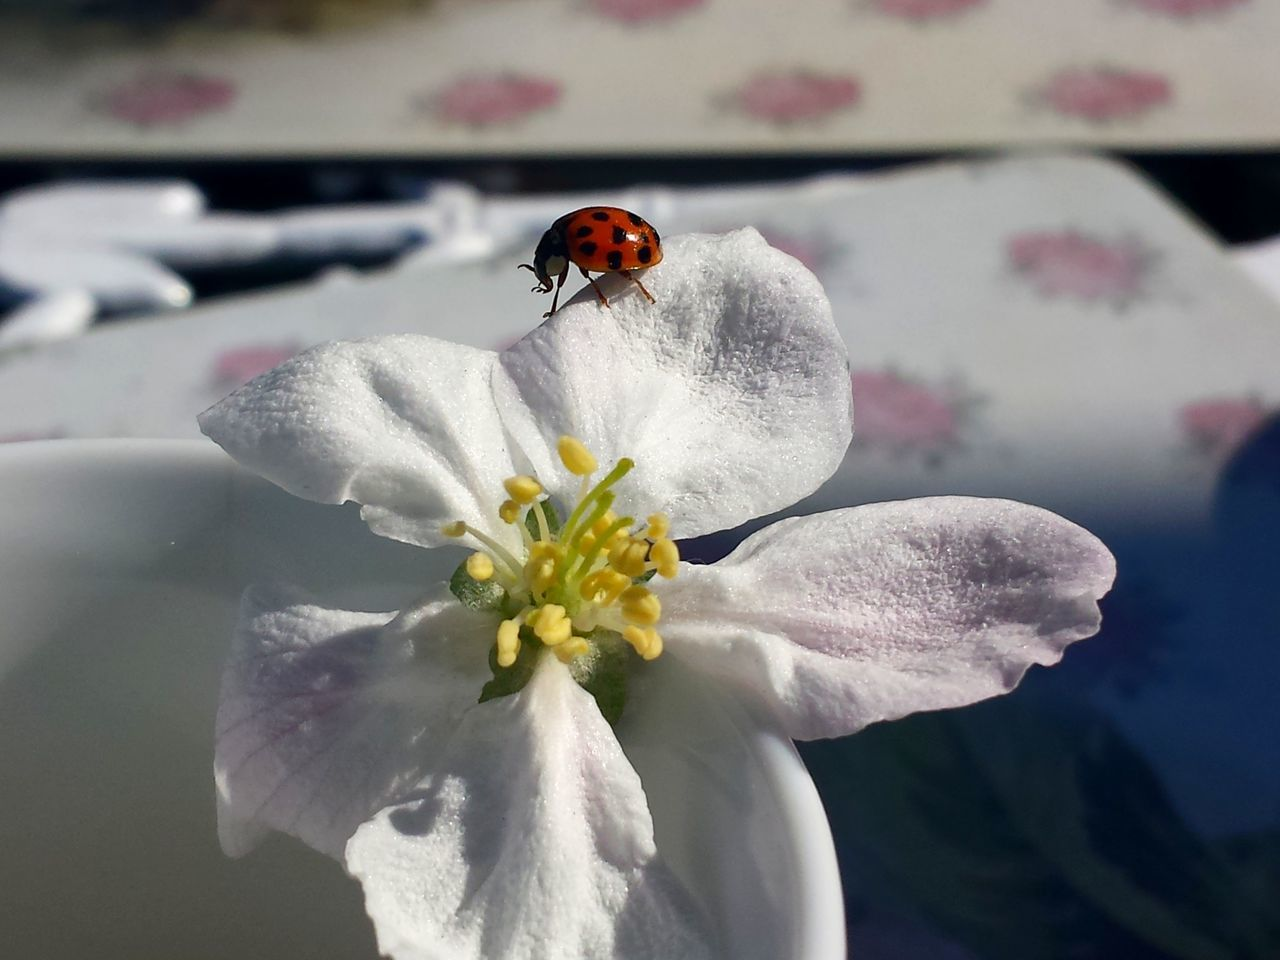 flower, petal, one animal, nature, fragility, beauty in nature, flower head, animal themes, animals in the wild, white color, insect, day, close-up, no people, outdoors, freshness, growth, plant, animal wildlife, ladybug, blooming, water